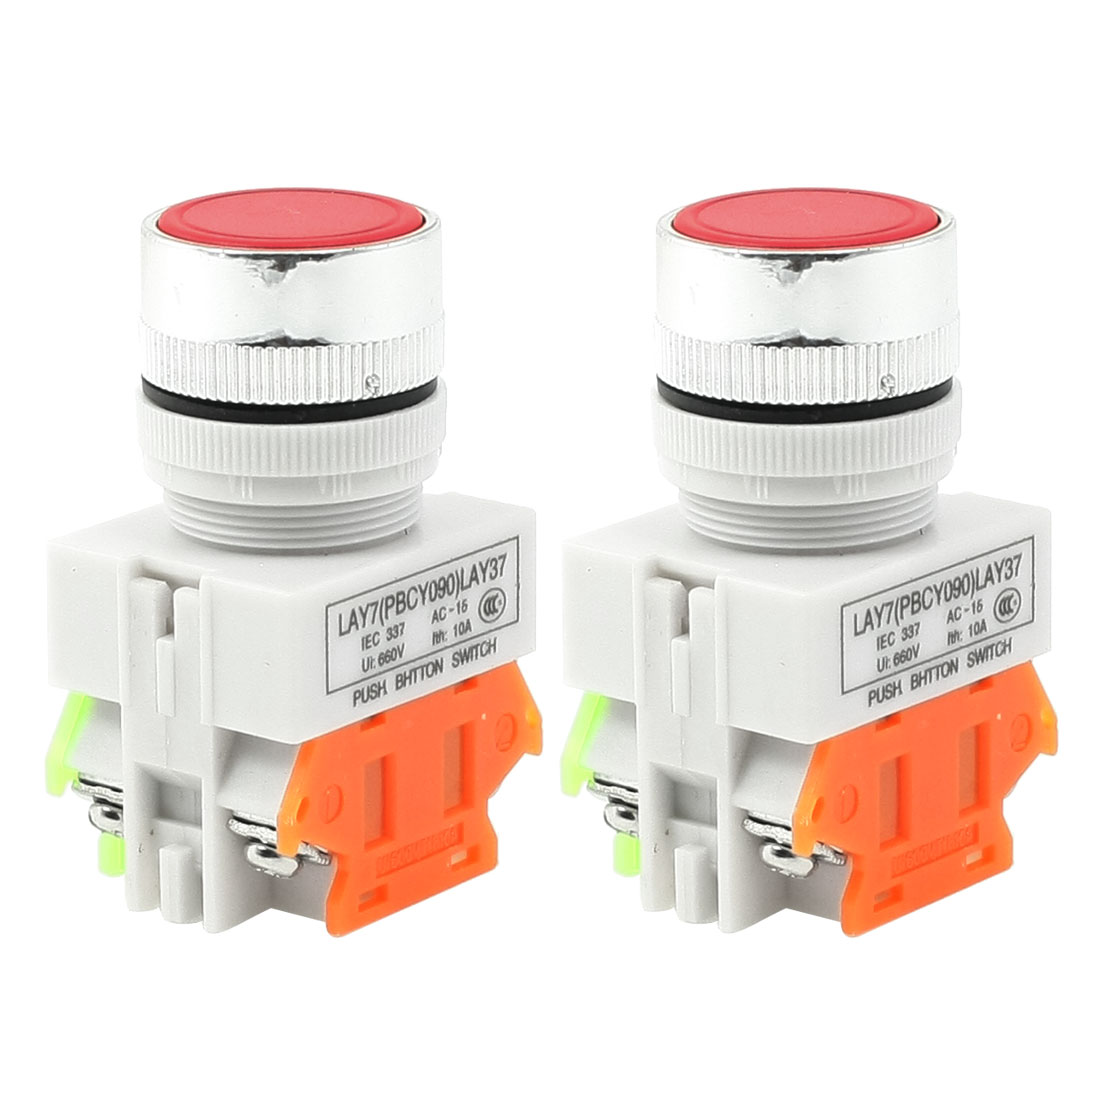 2 Pcs Round Red Cap 2Terminal Momentary Electric Push Button Switch AC 660V 10A